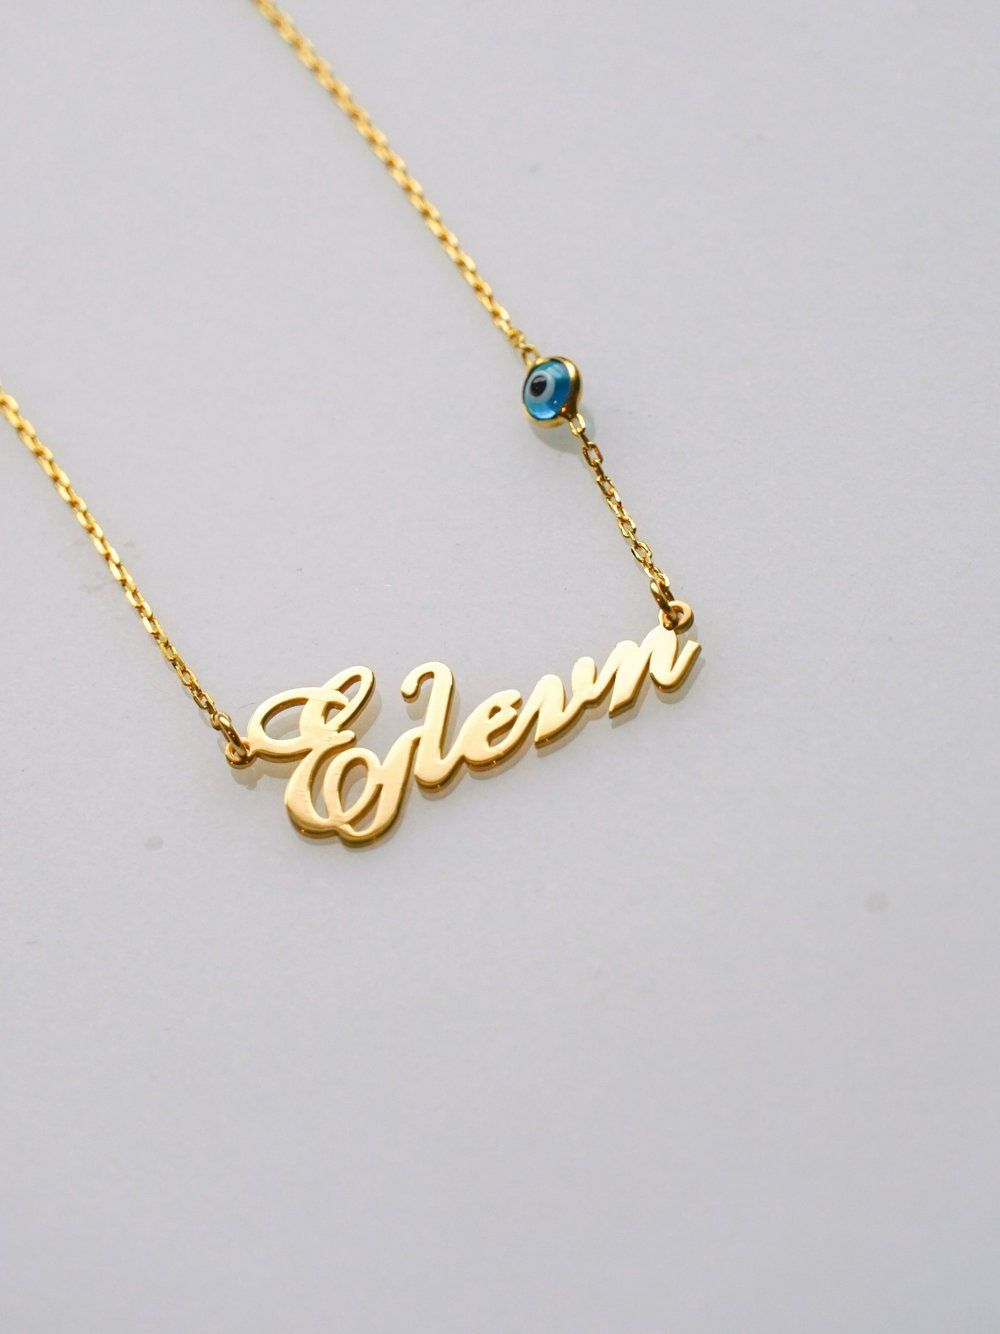 Elenh Eleni Nameplate Necklace Greek And English Nameplate Necklaces Made In Greece Evile Nameplate Necklace Beautiful Necklaces 14k Solid Gold Necklace